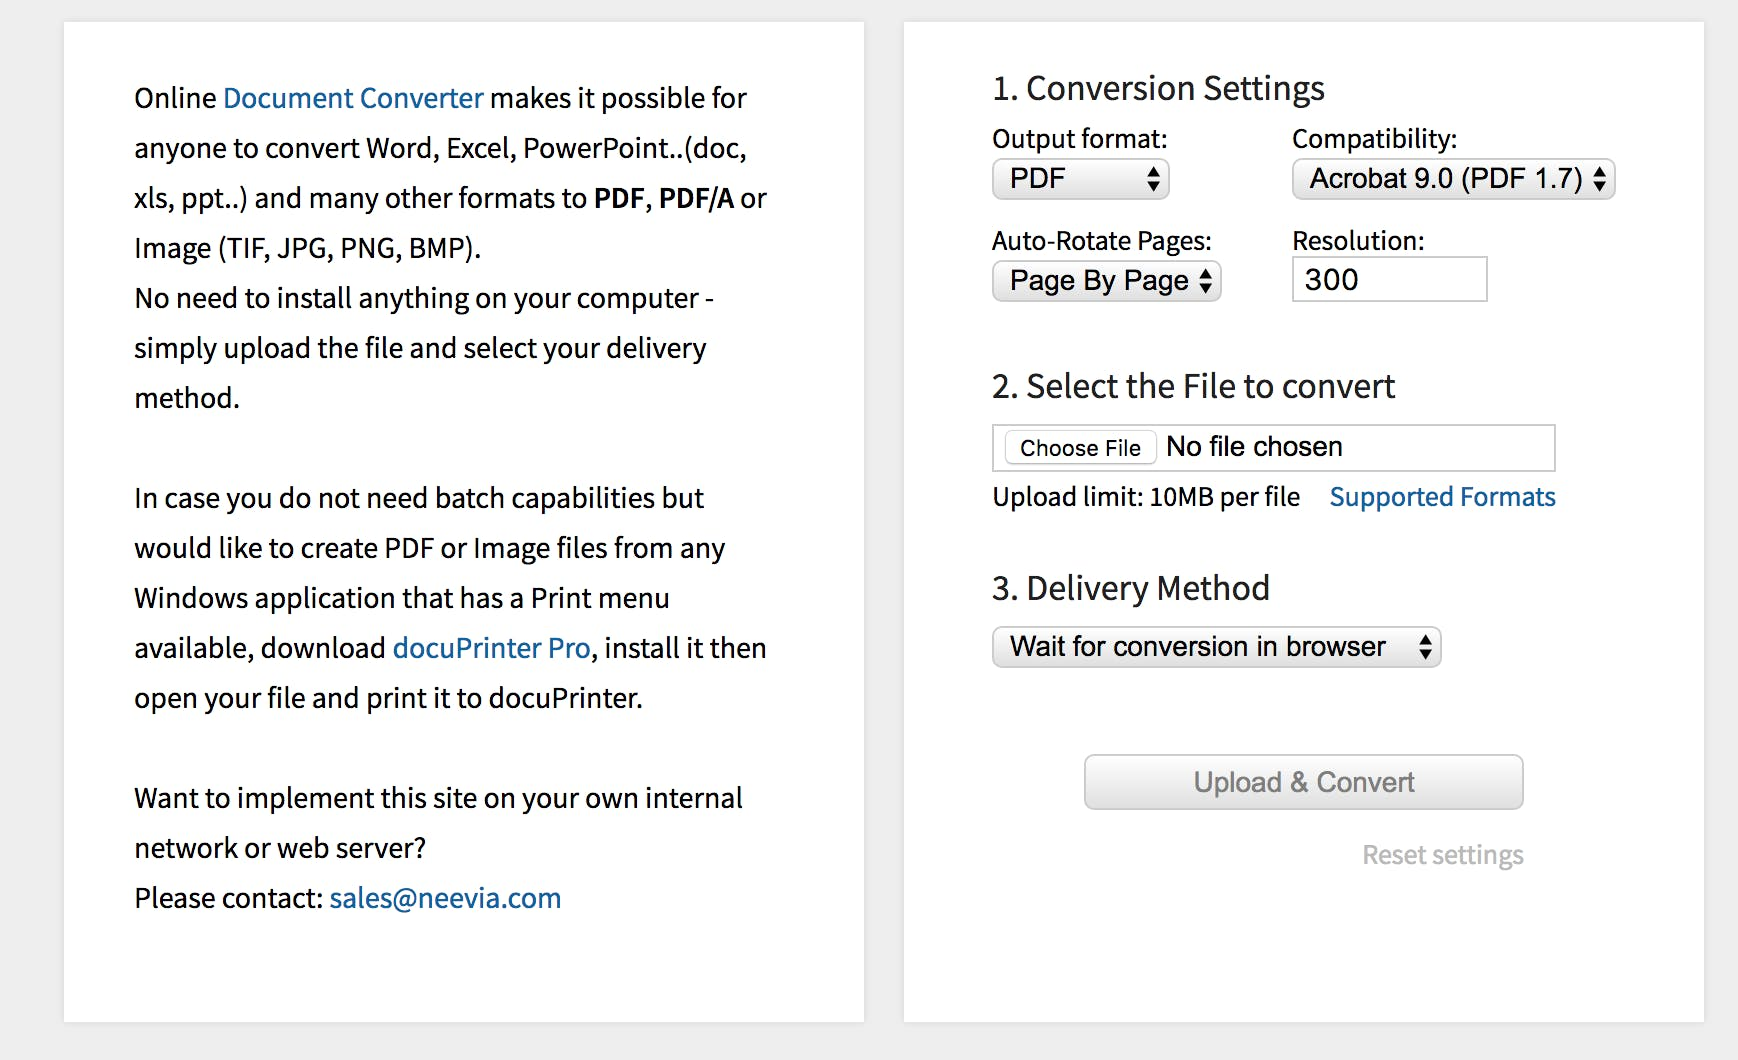 How to convert document to PDF